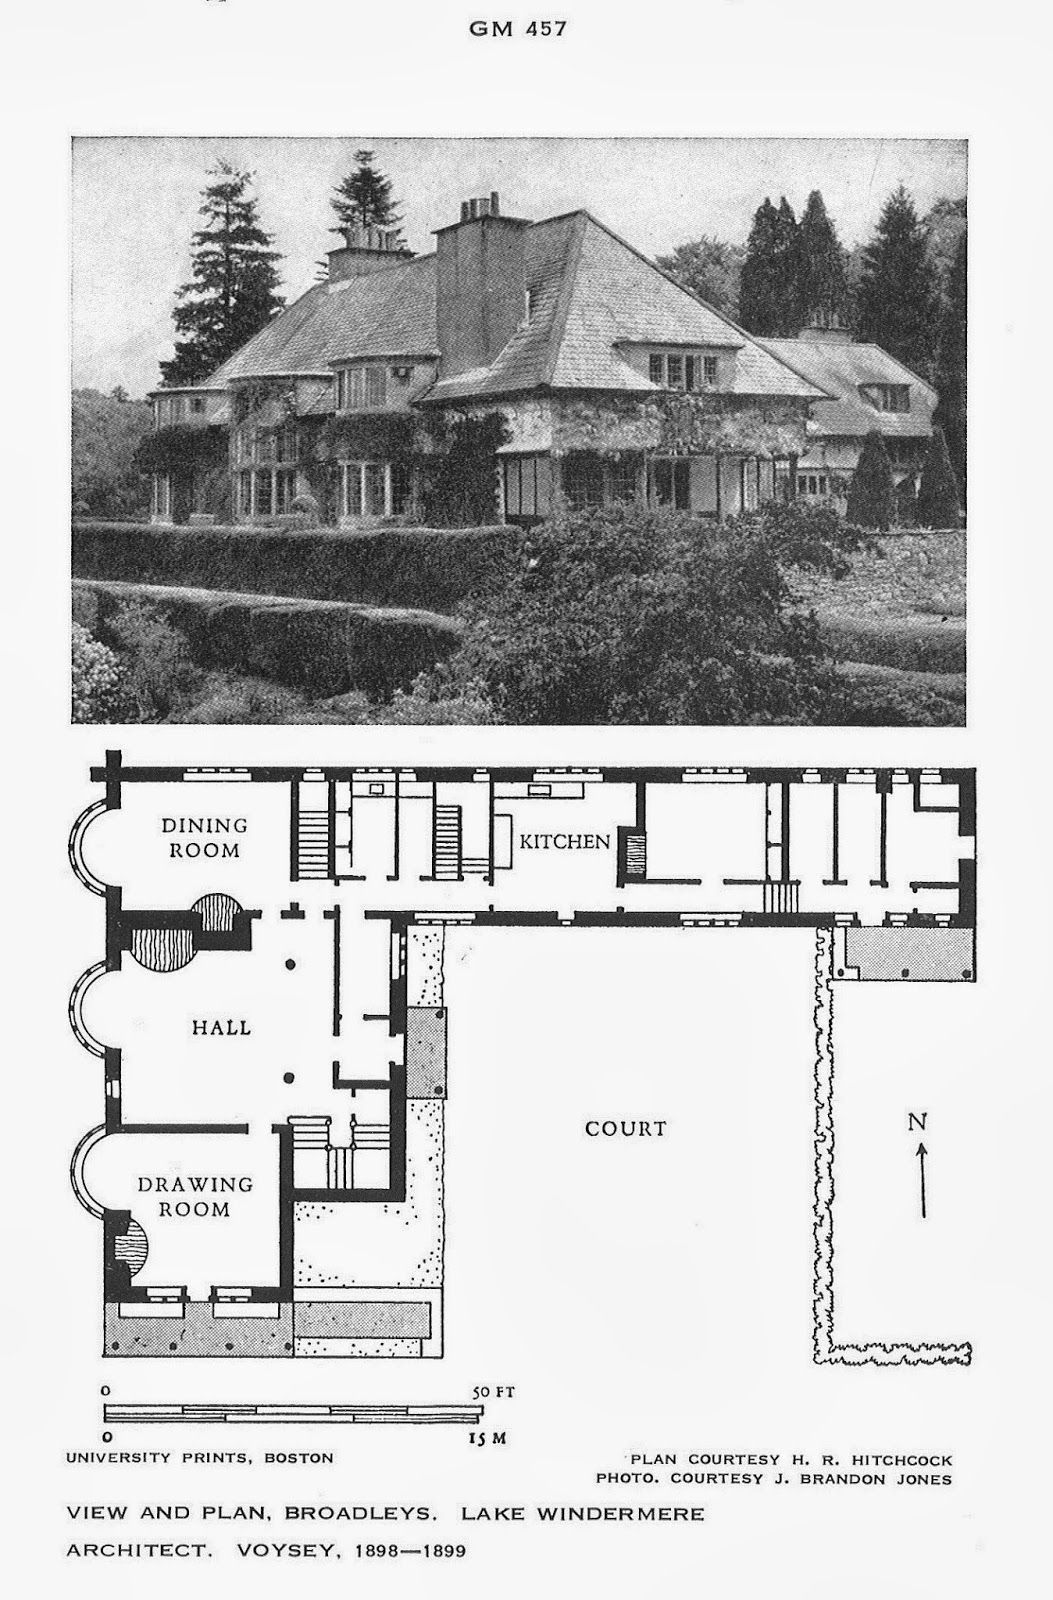 House At Broadleys By C F A Voysey Before 1898 1899 Source Archtitectural History Broadleys Arts And Crafts House Vintage House Plans Urban Architecture